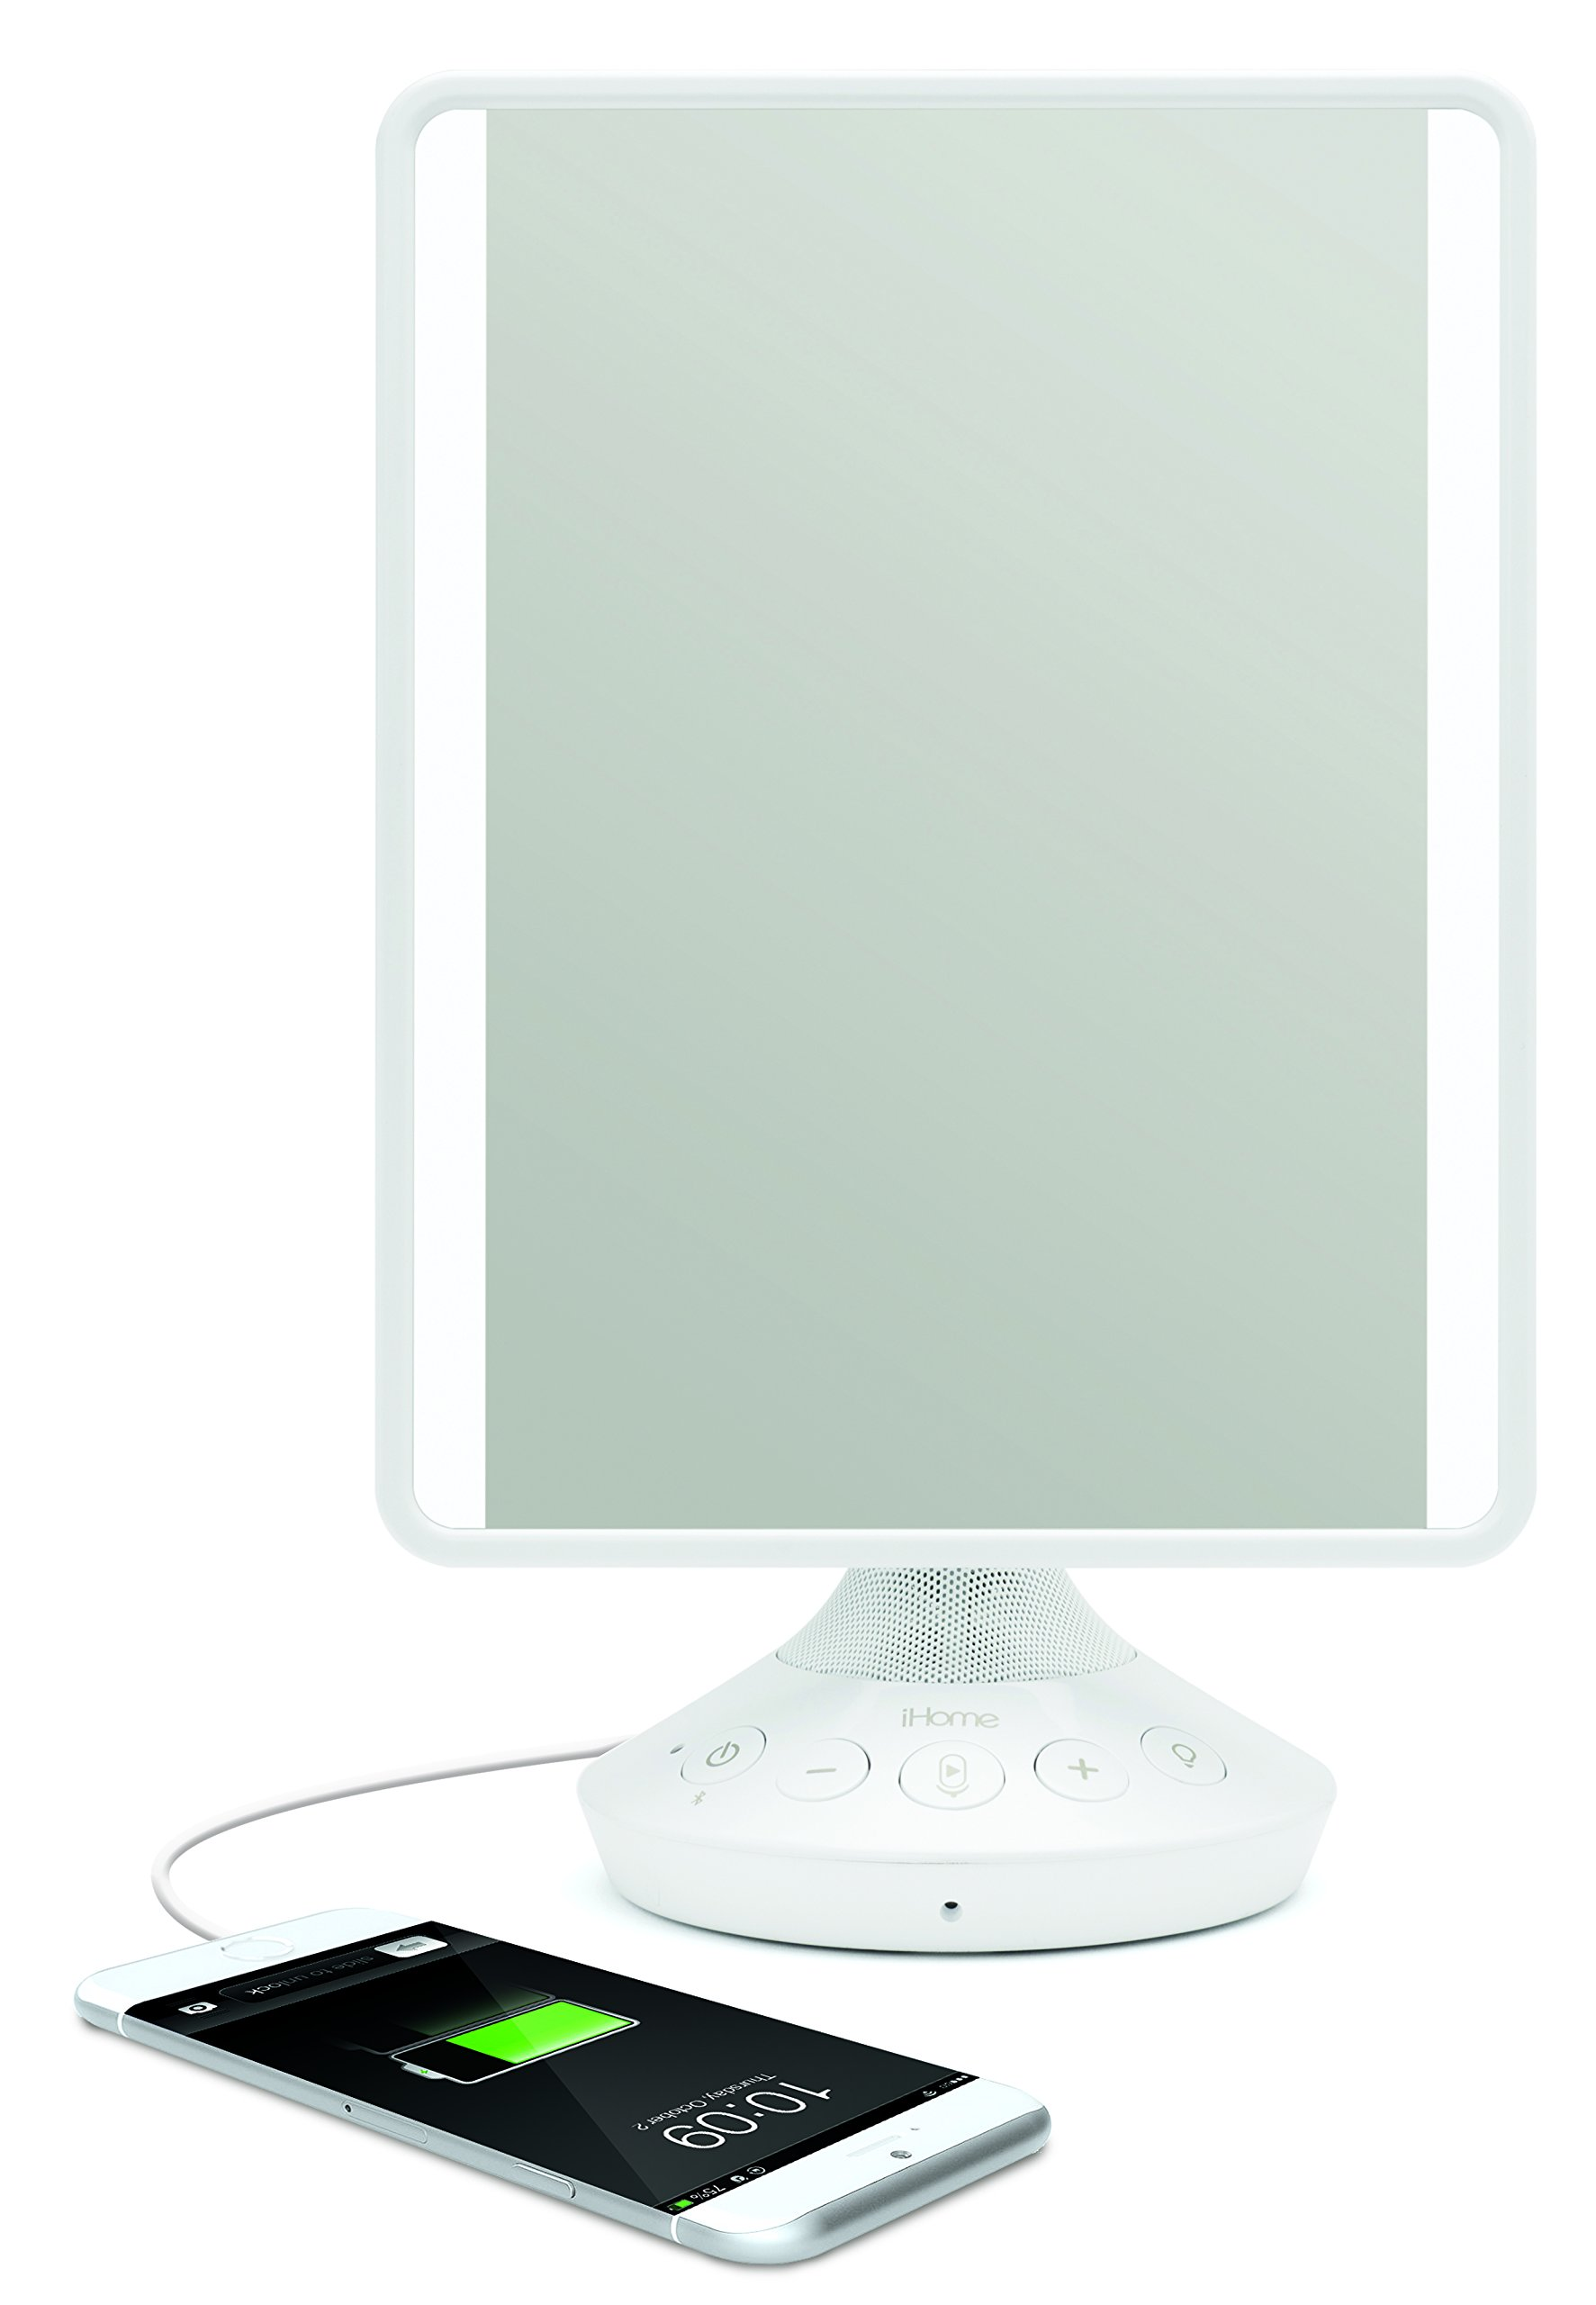 iHome 7'' x 9'' Reflect iCVBT2 Adjustable Vanity Mirror with Bluetooth Audio, Hands-Free Speakerphone, LED Lighting, Siri & Google Support USB Charging, Flat Panel LED Lighting (White)